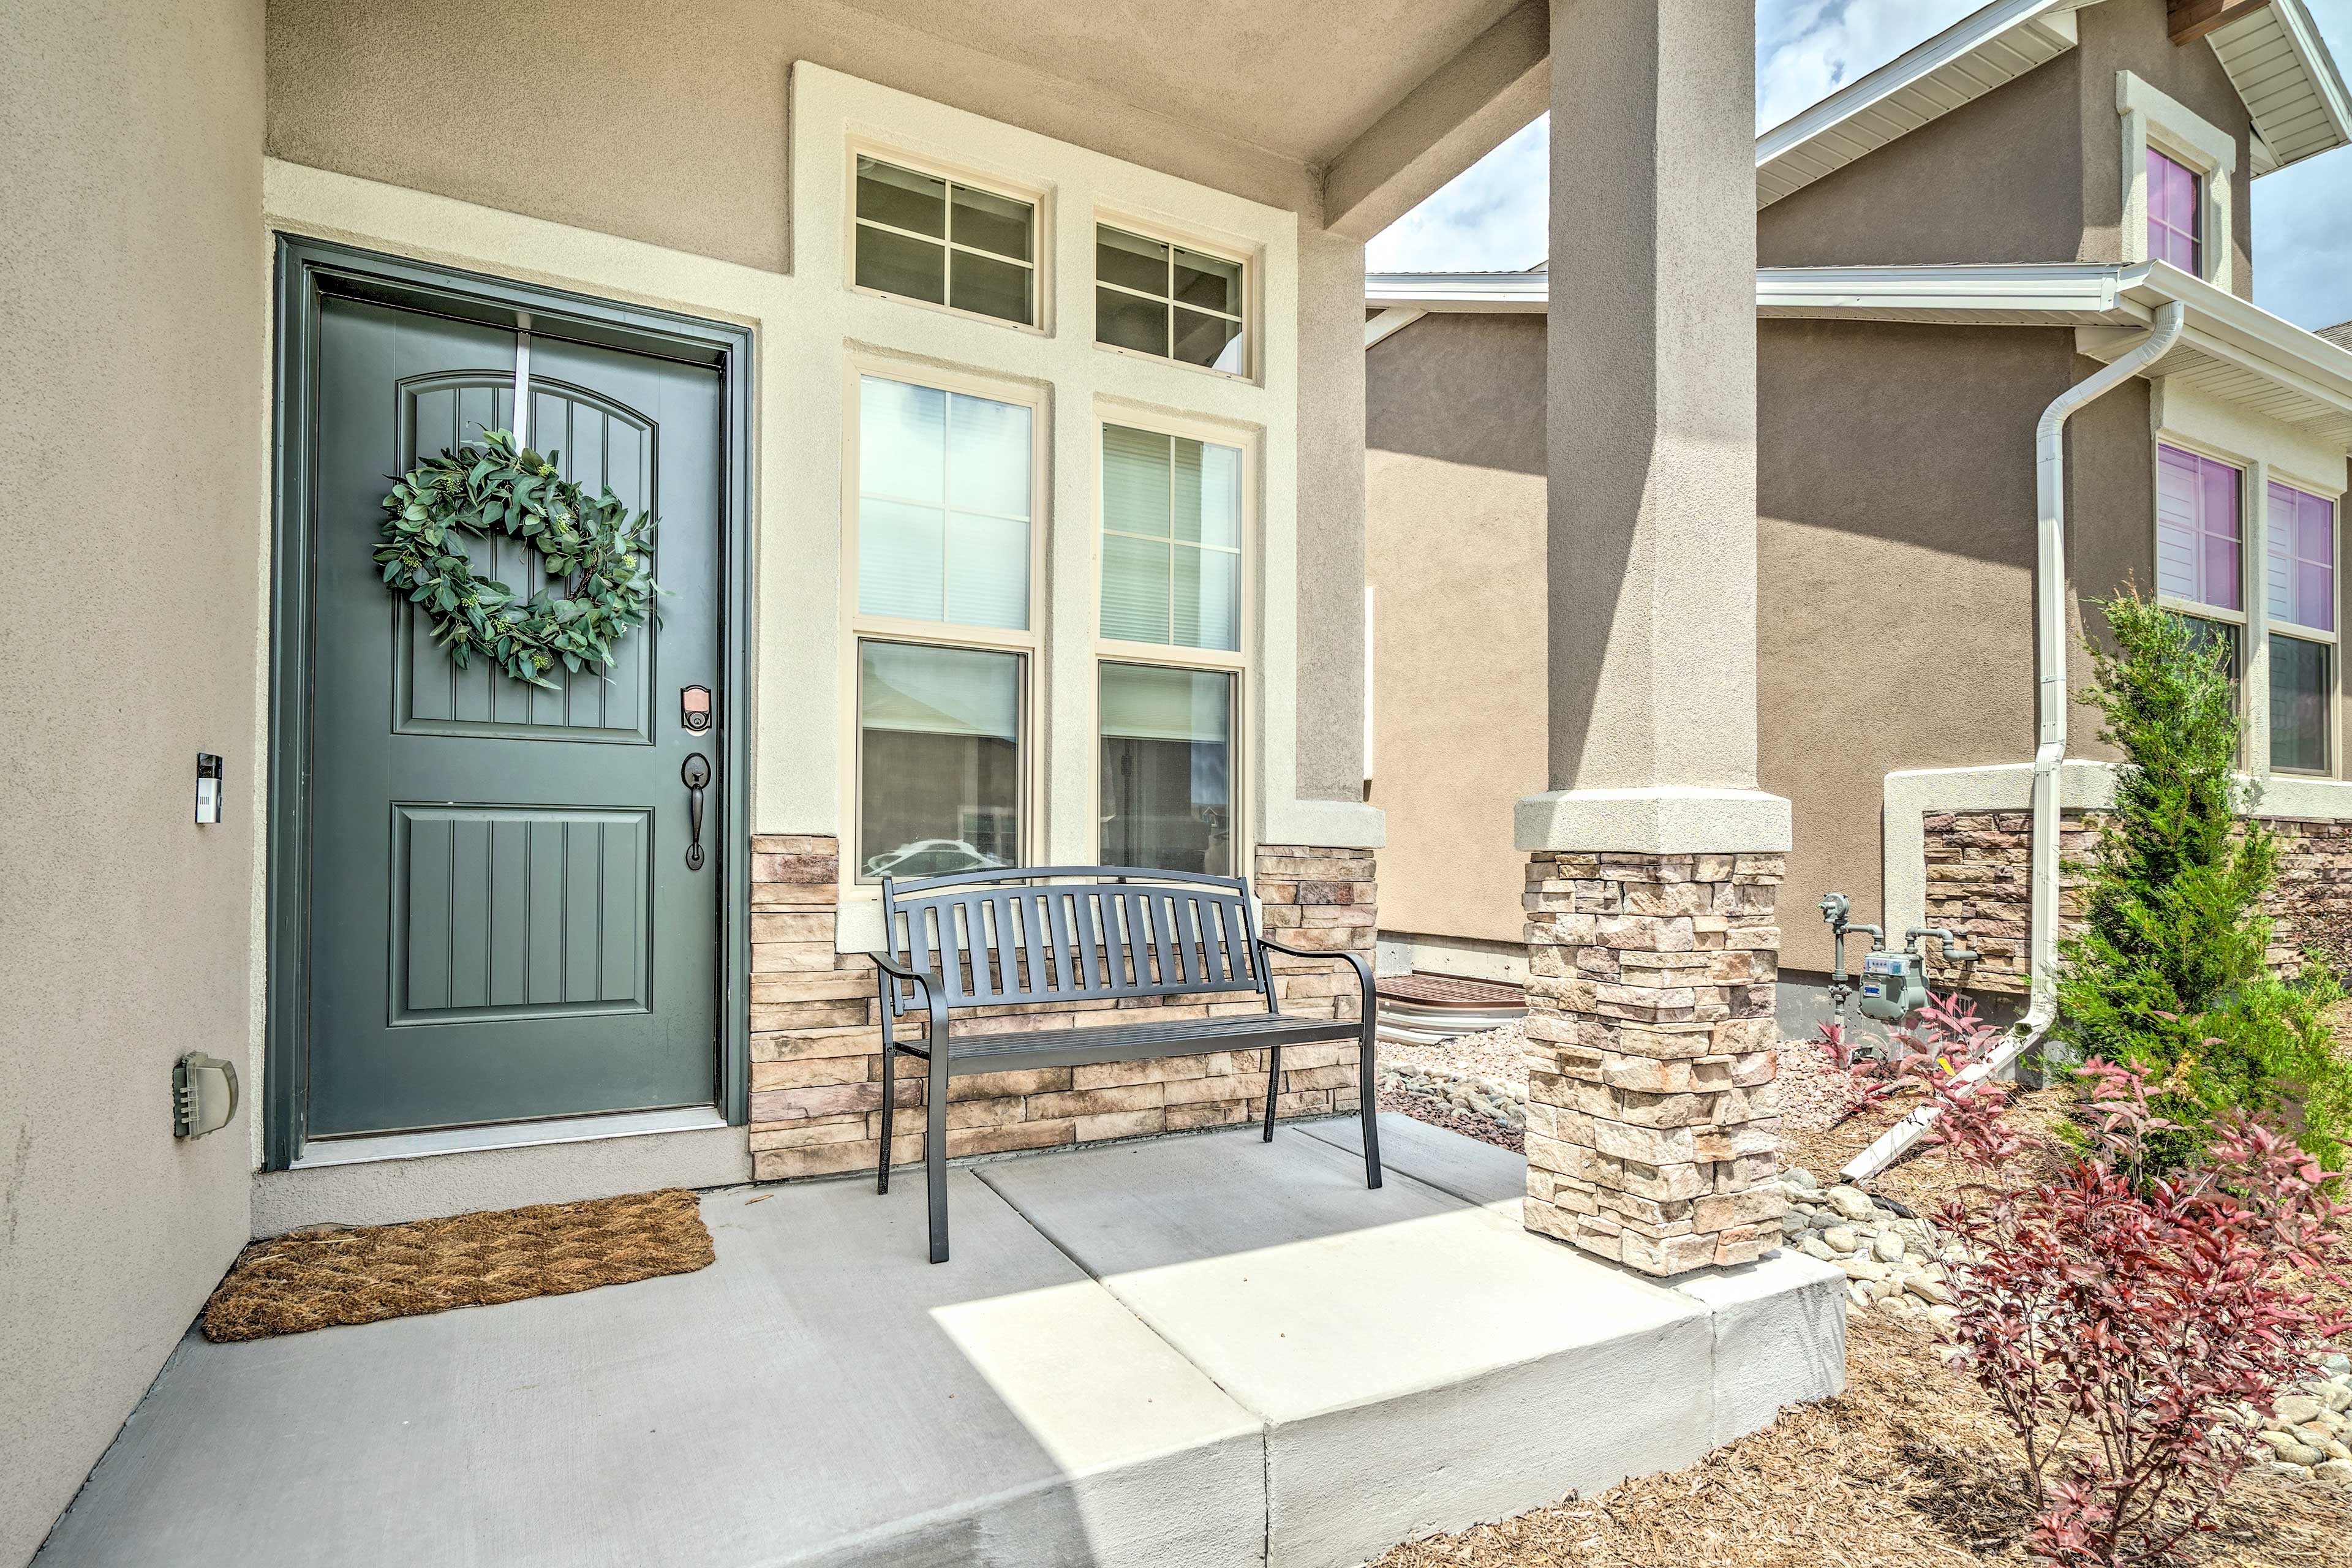 Book now to reserve this chic, modern townhome in Colorado Springs!